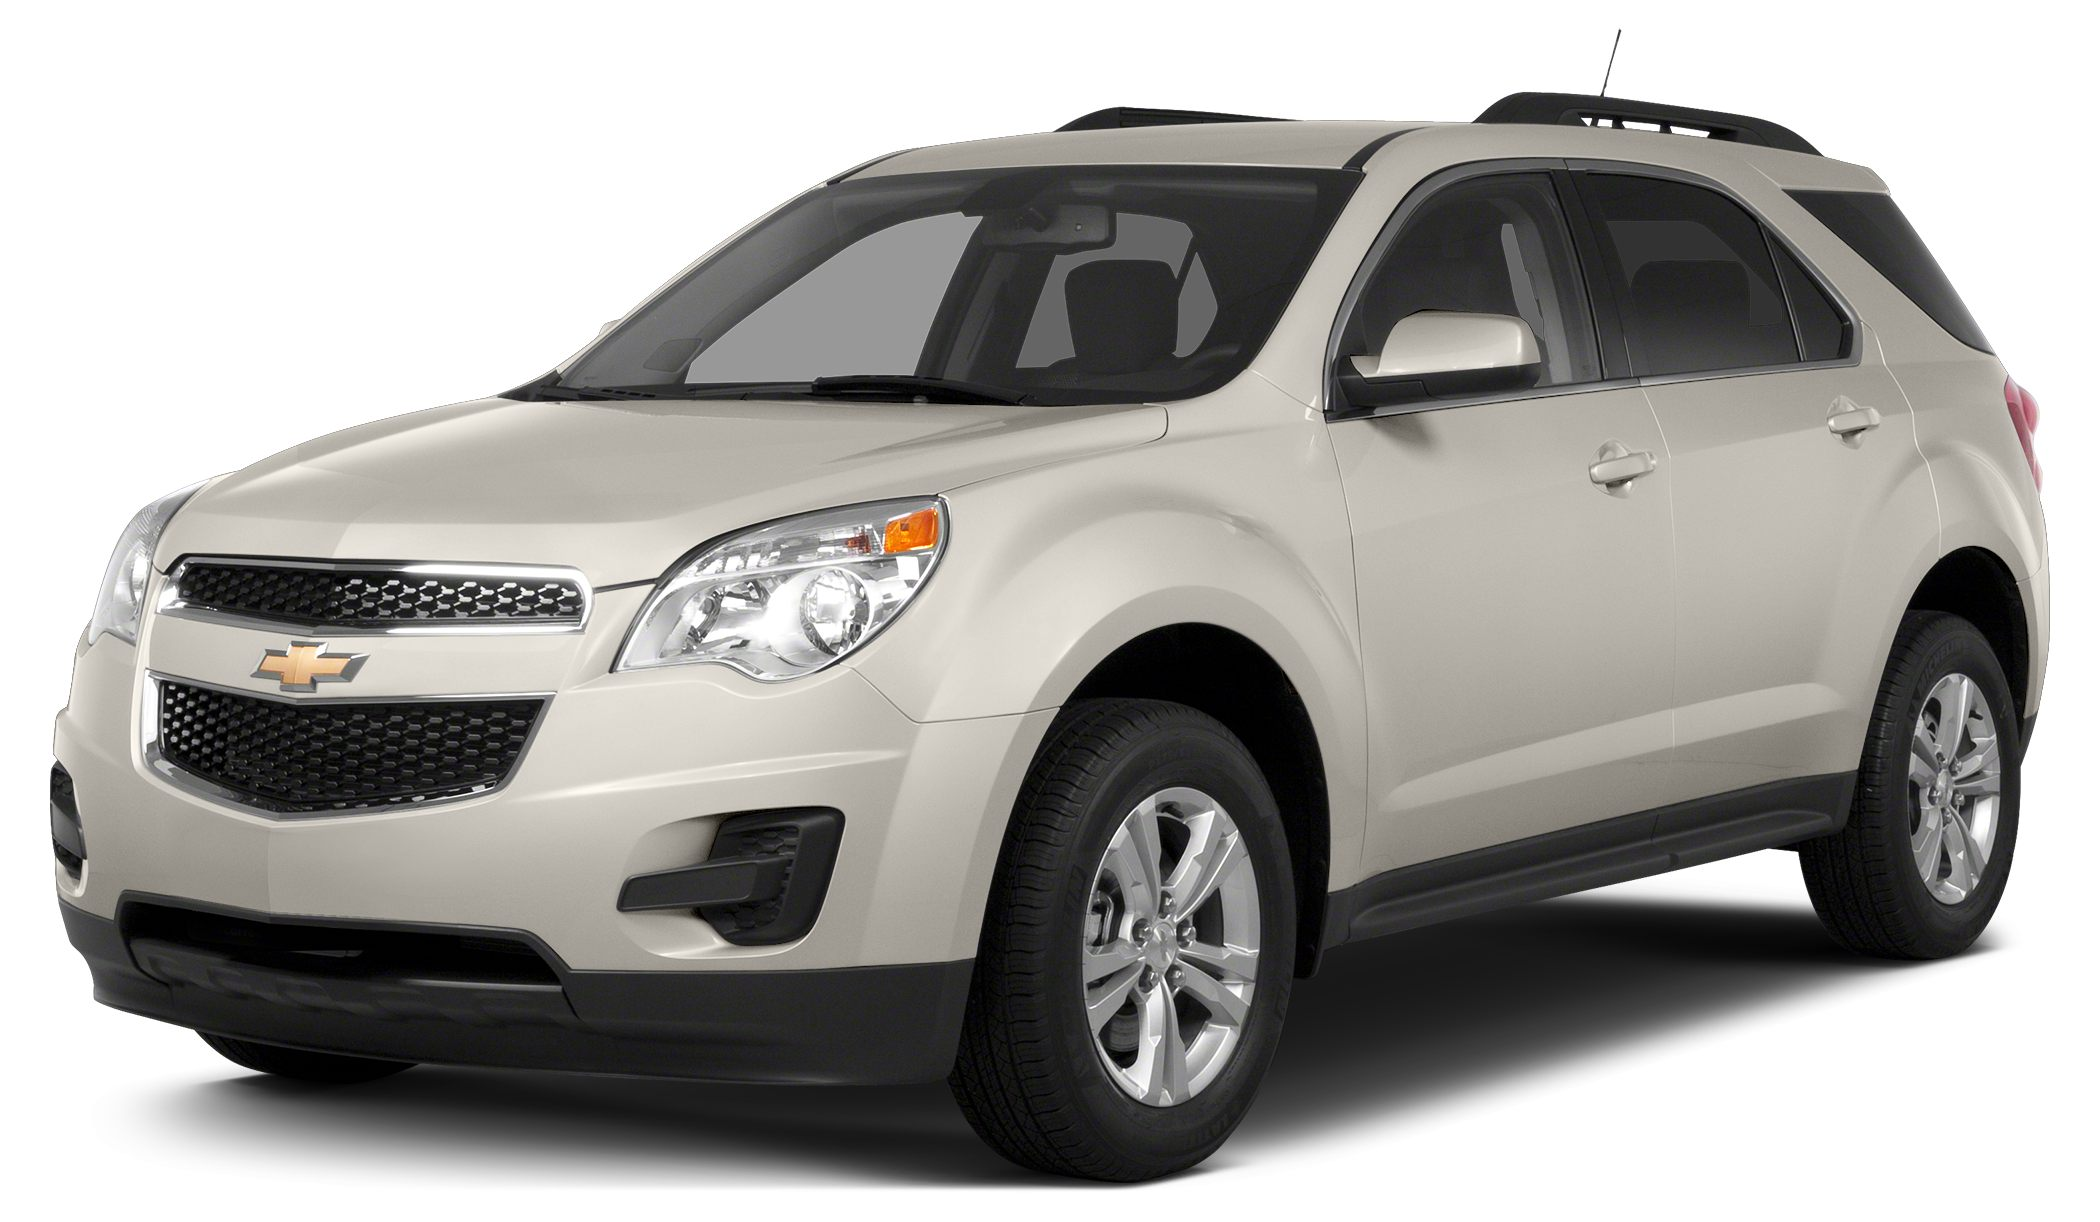 2015 Chevrolet Equinox LTZ GM Certified Pre-Owned means you not only get the reassurance of a 12mo